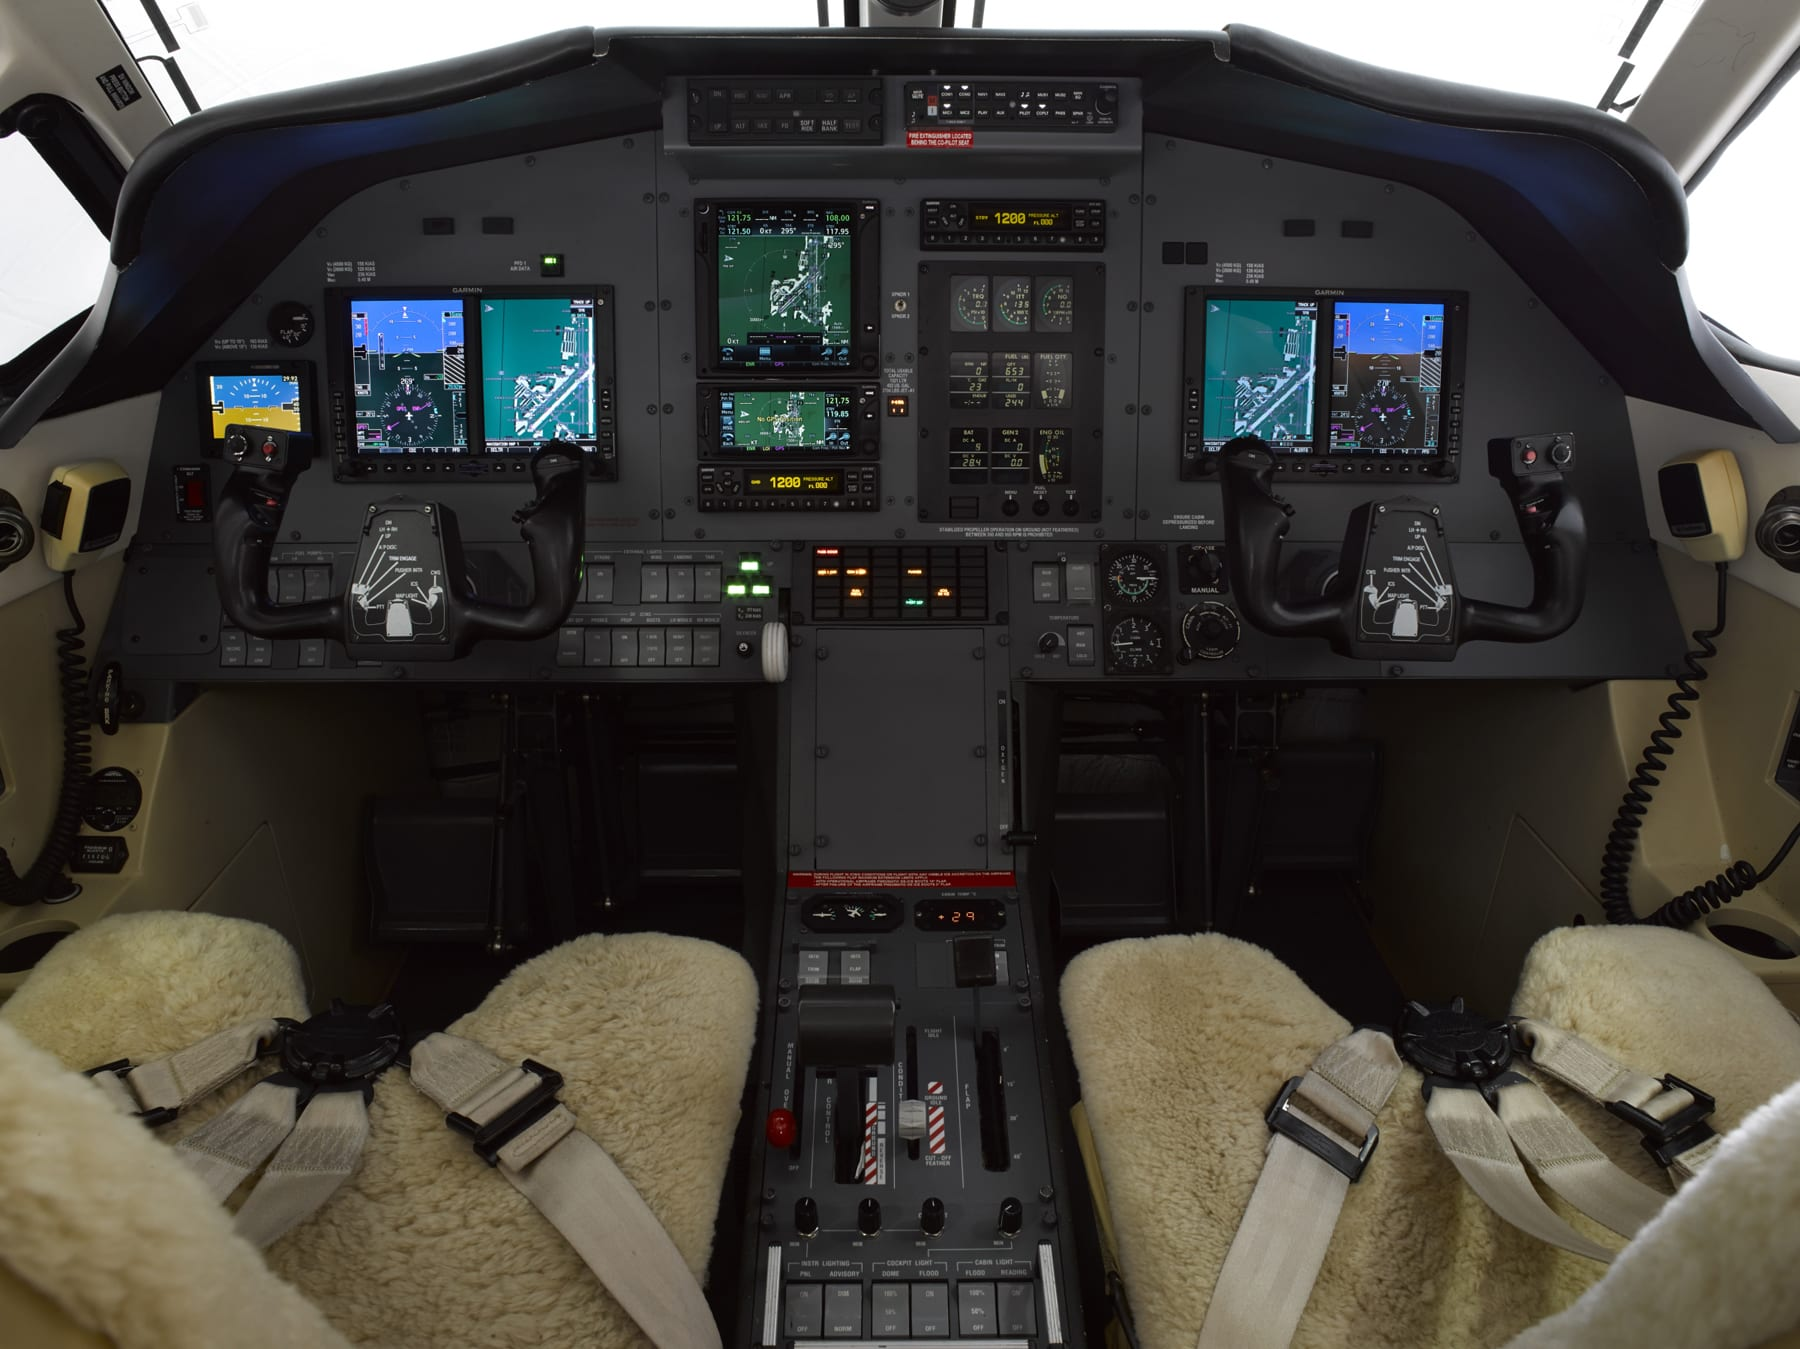 Banyan completes Garmin Avionics STC on Pilatus PC-12